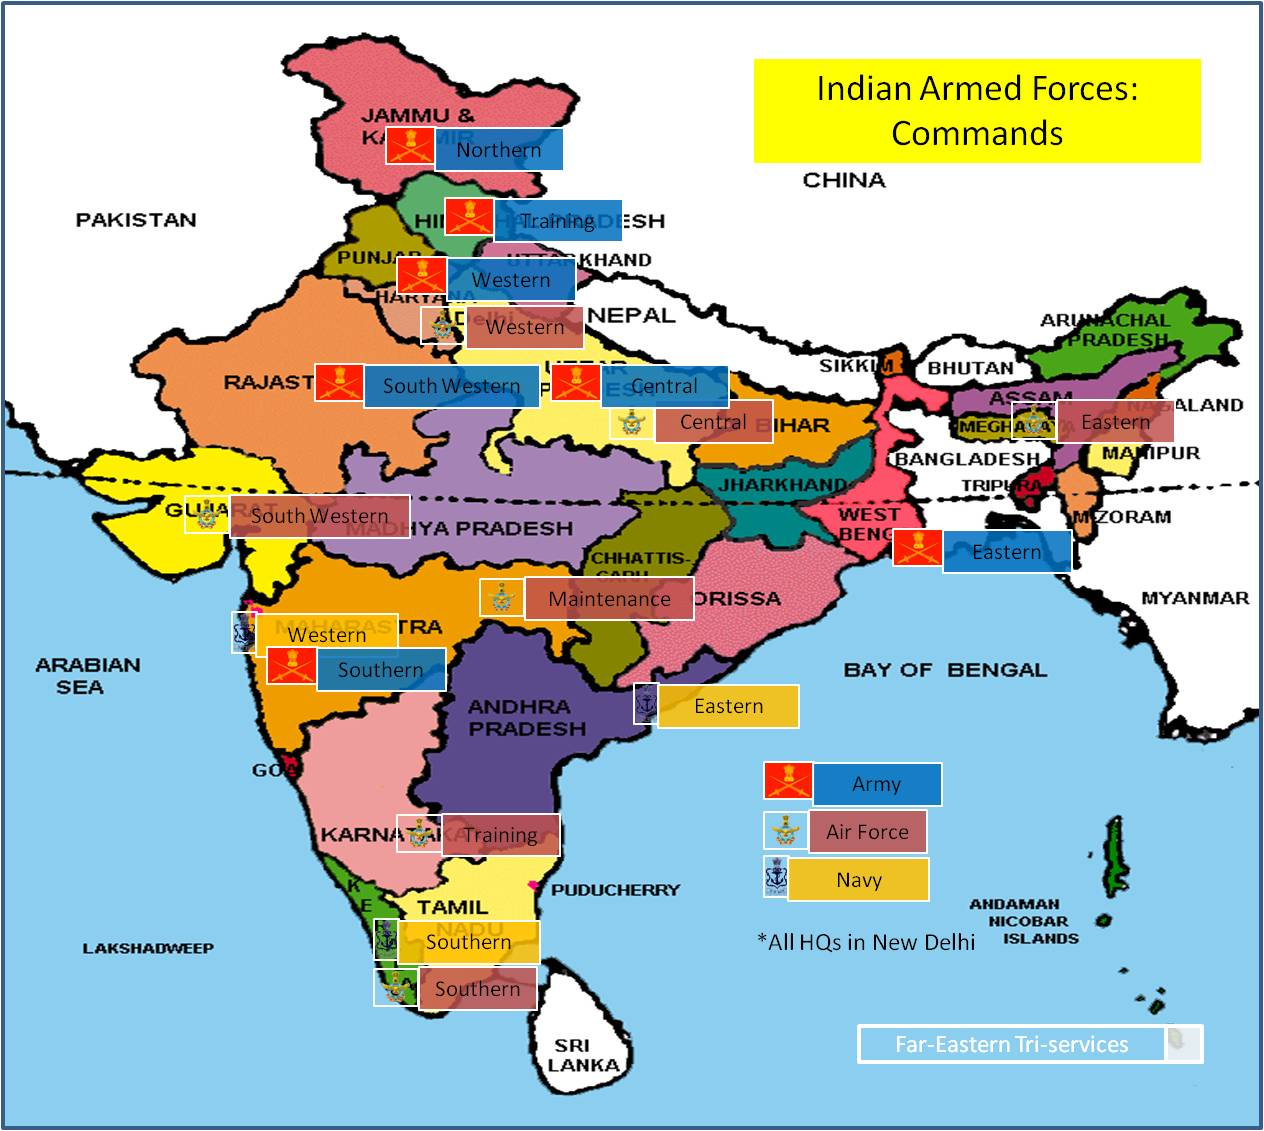 Opinions 24x7: Indian Armed Forces: Commands